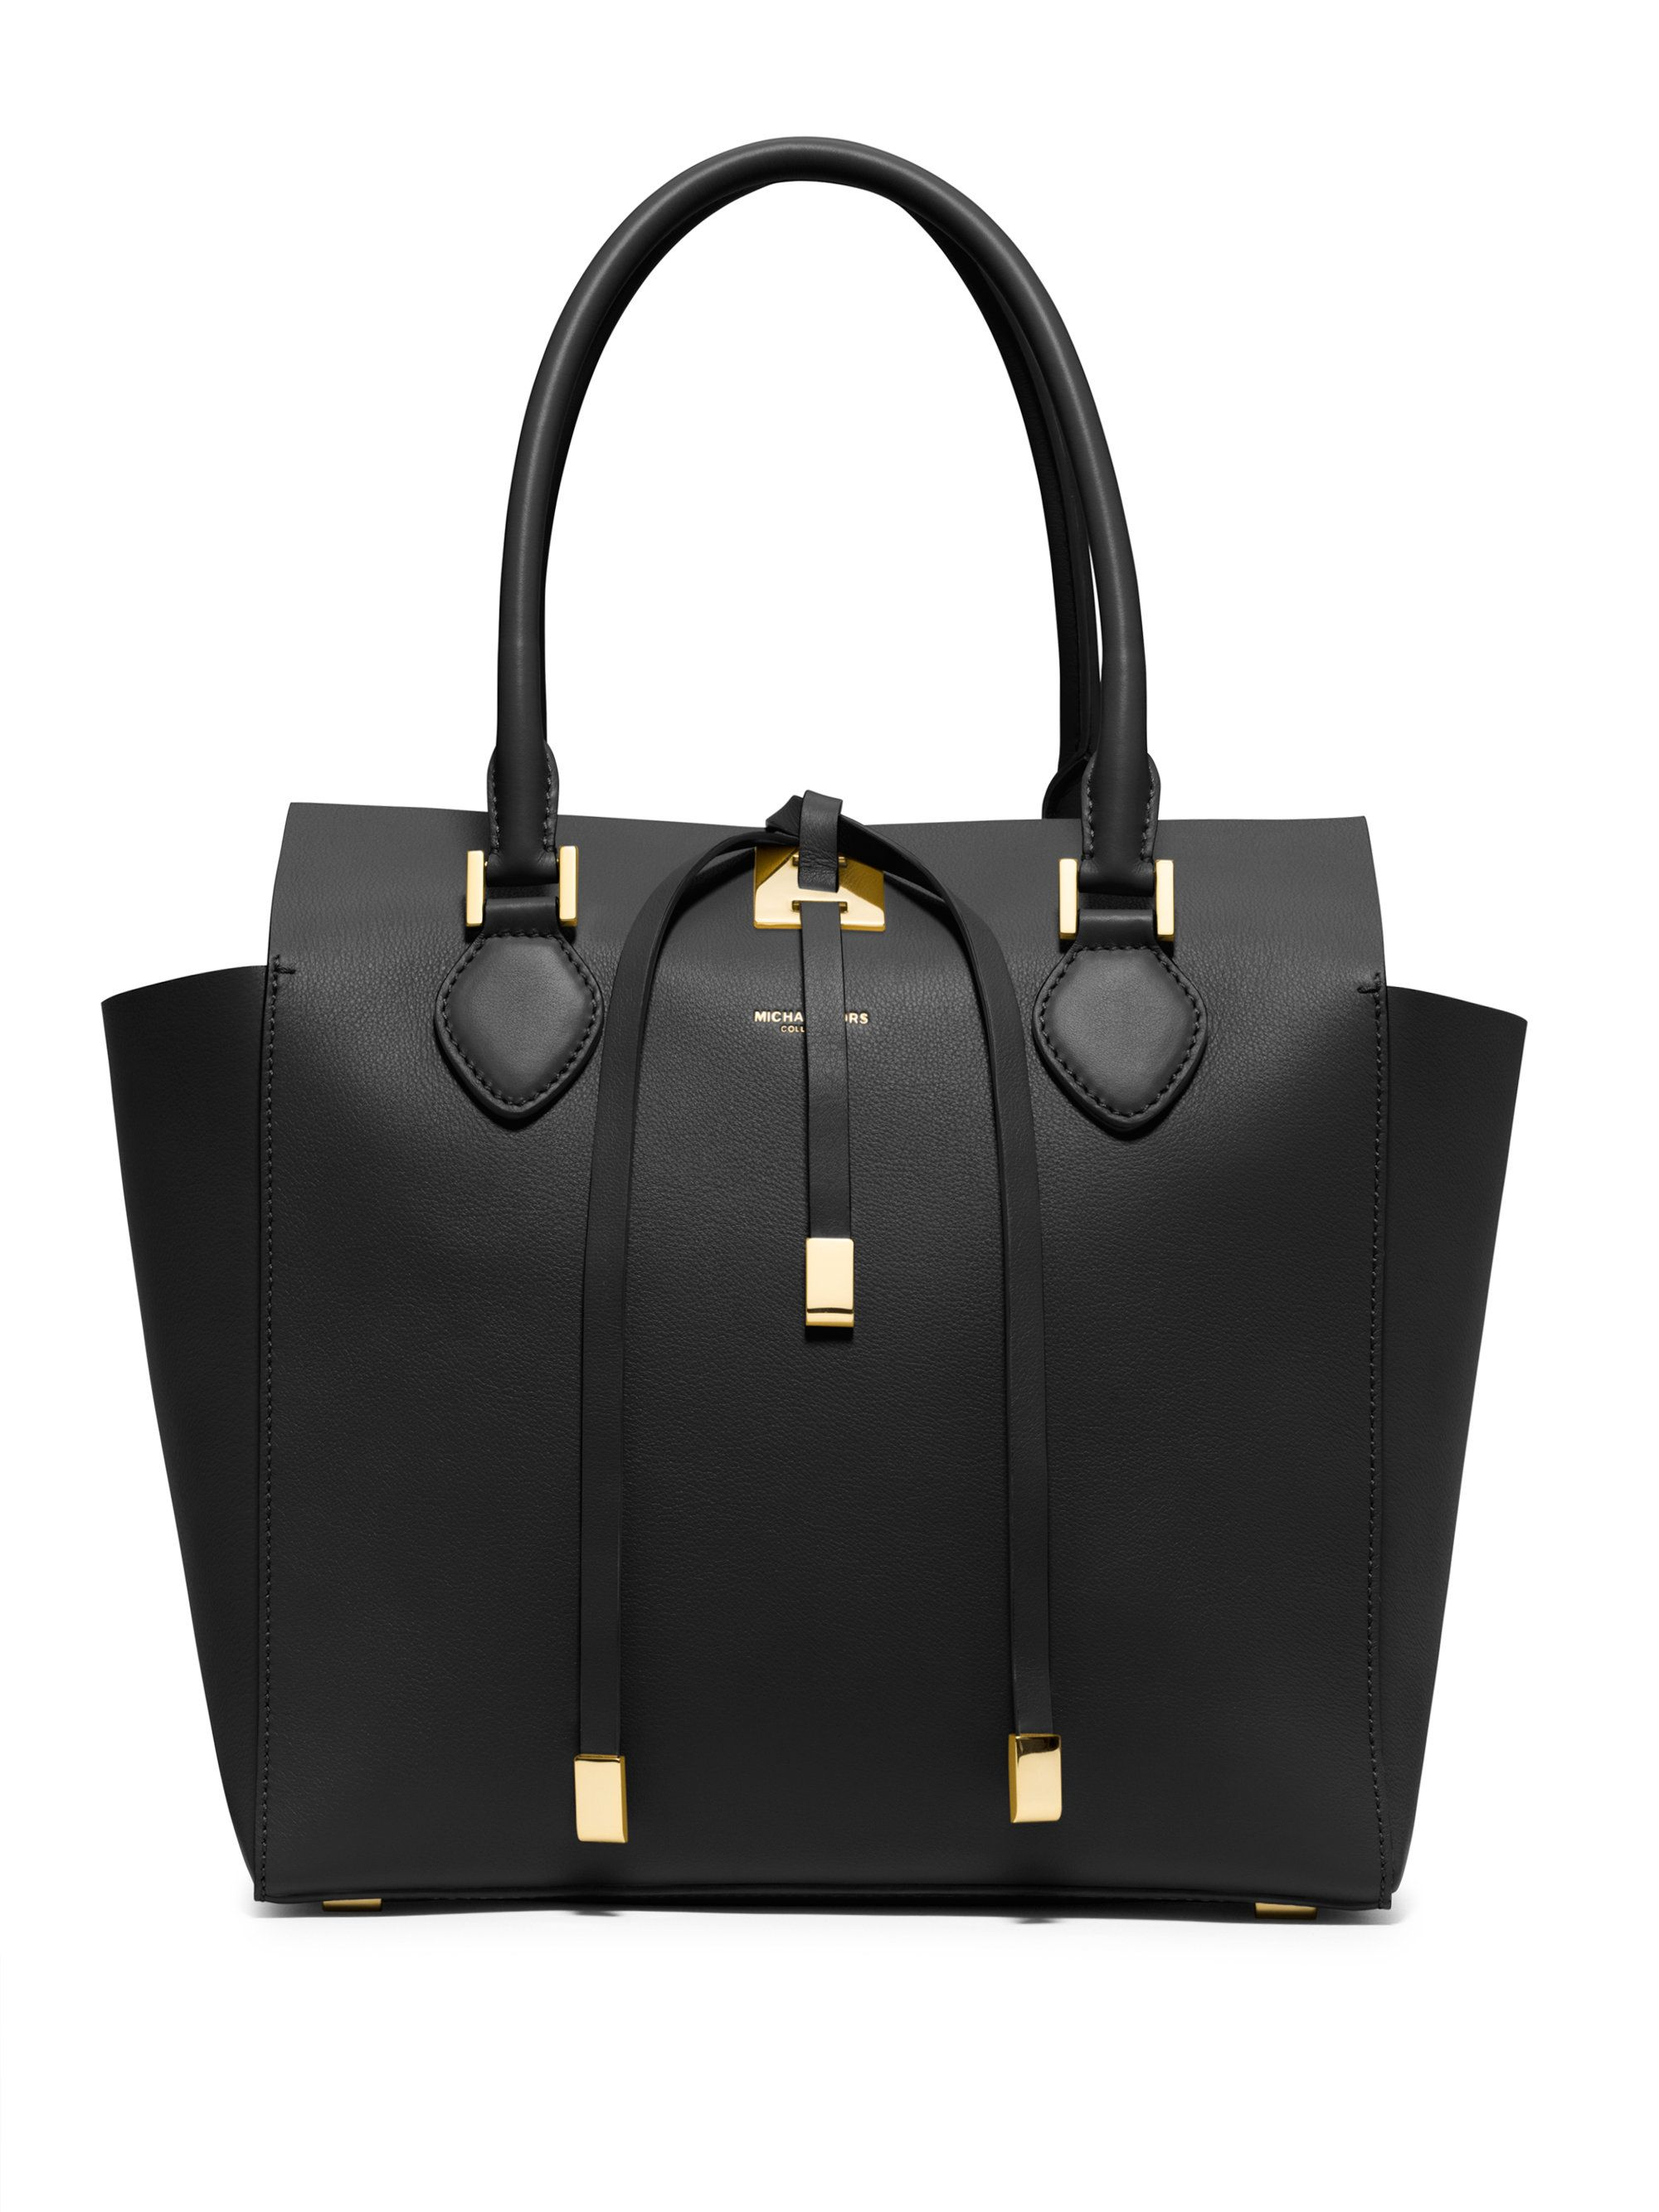 074303f30dc1 Michael kors Miranda Medium Tote in Black | LEATHER TOTES ...